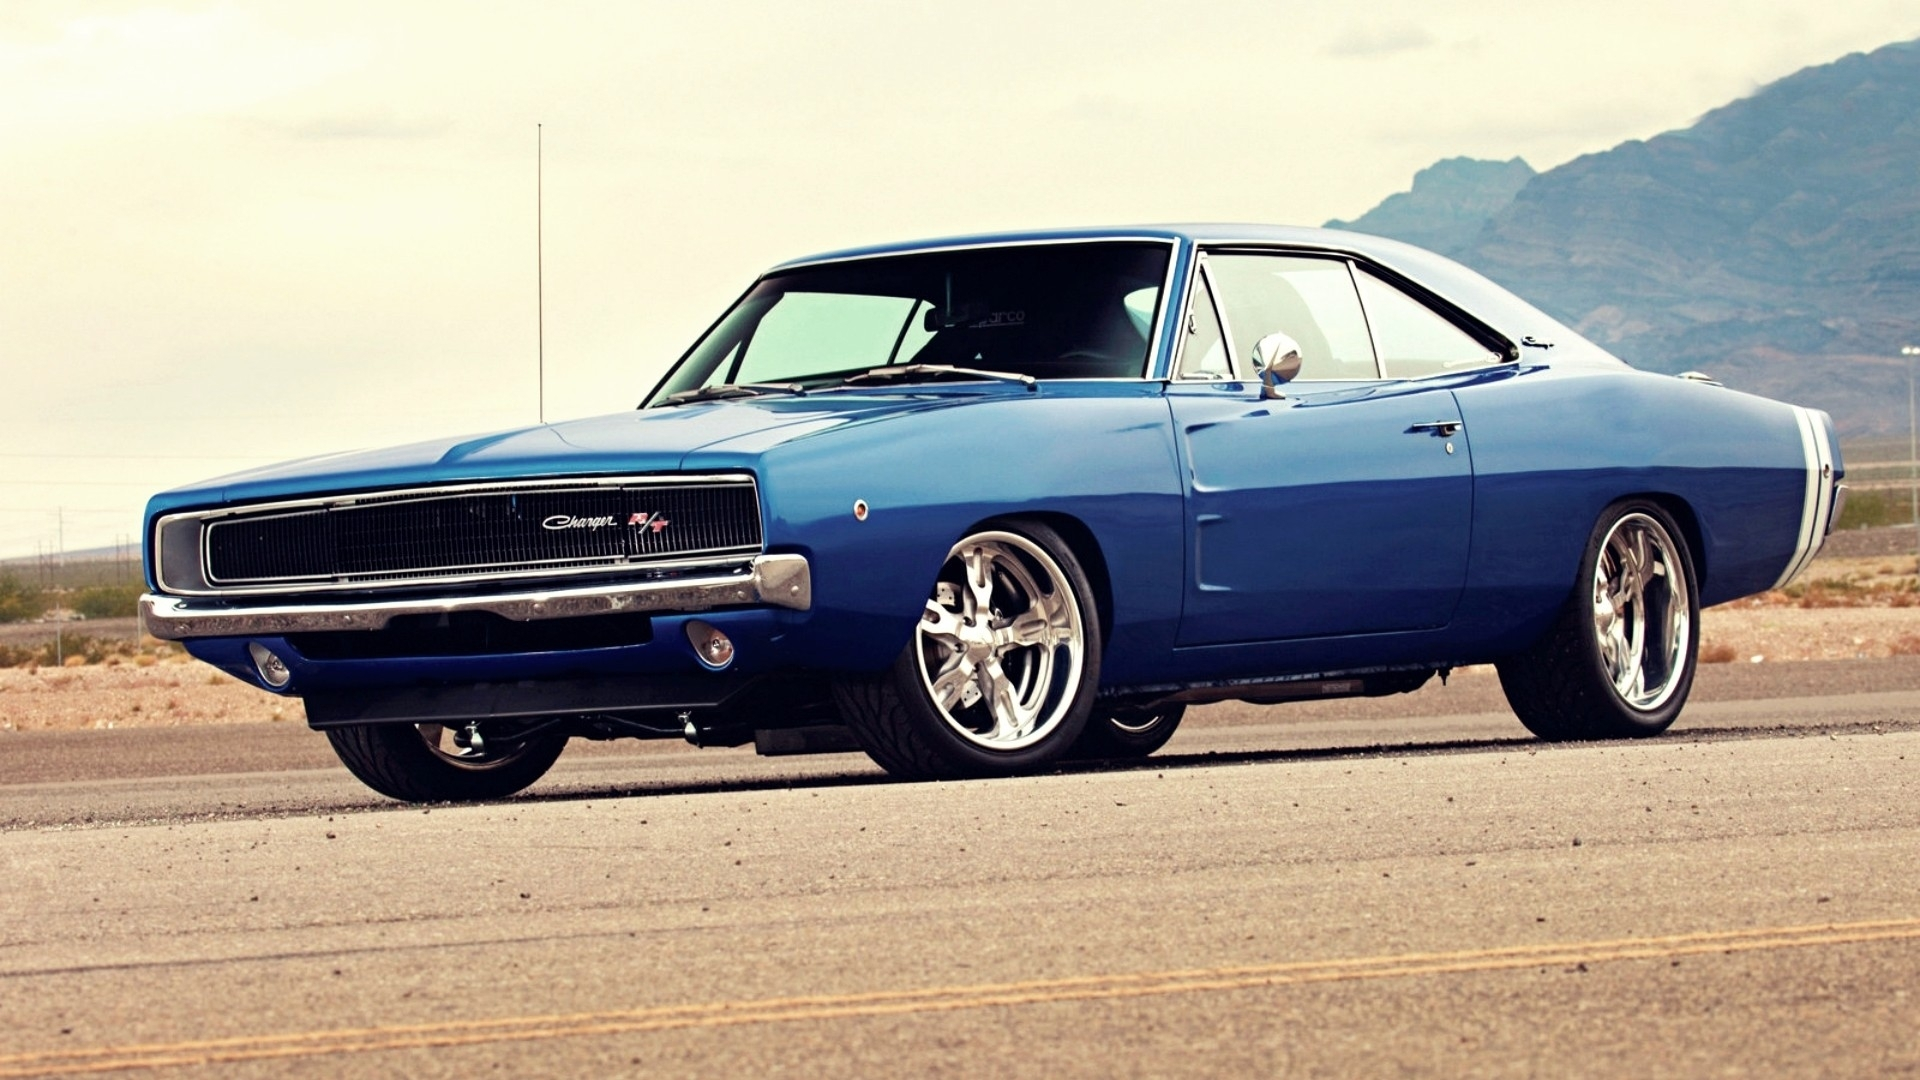 introducing you to the 1970 dodge charger - carlassic